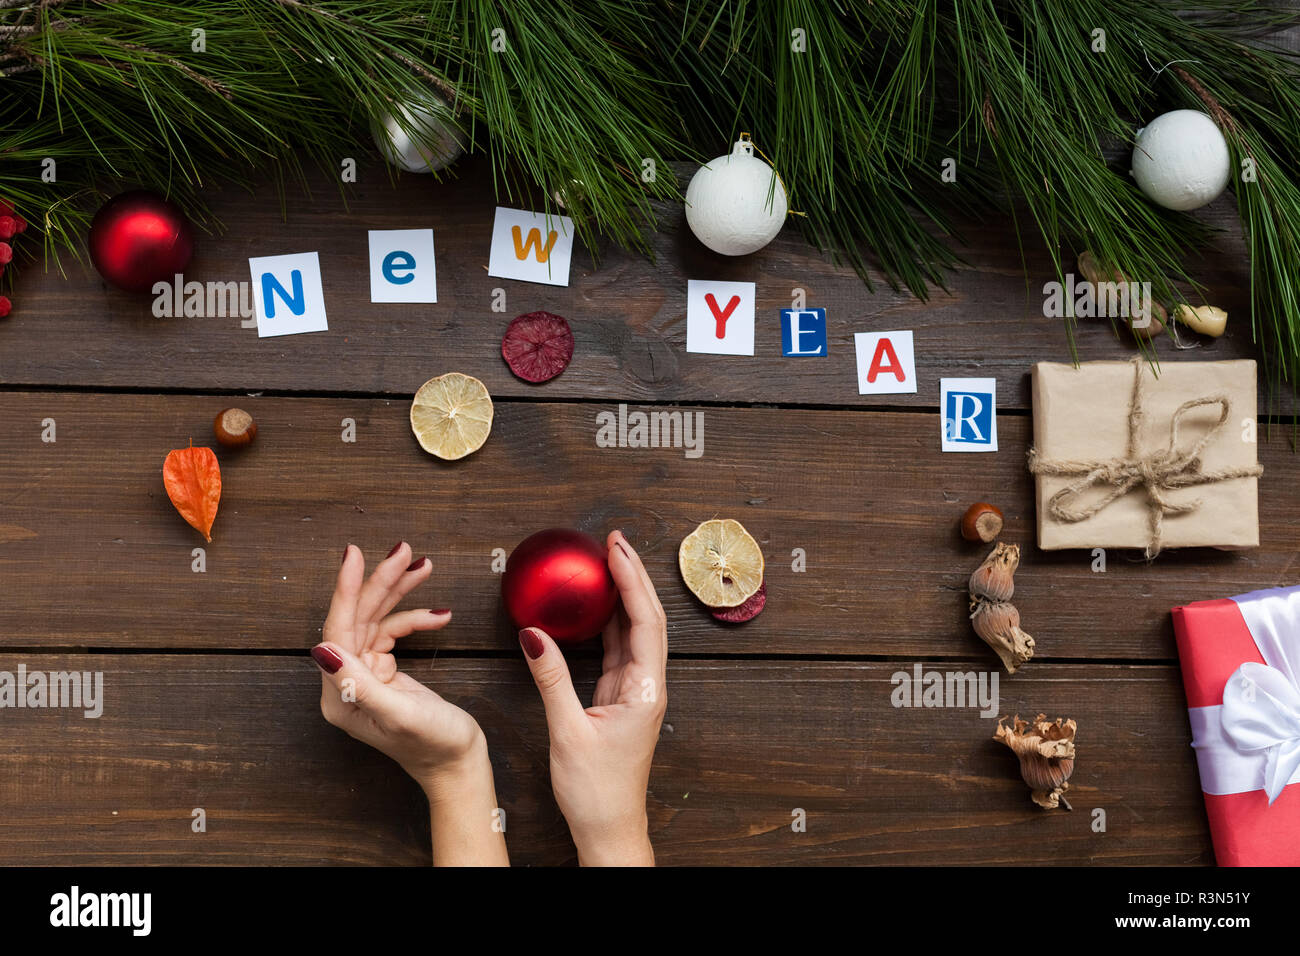 Christmas Background Christmas Gifts New Year Holiday Postcard Winter 2019 2020 Stock Photo Alamy